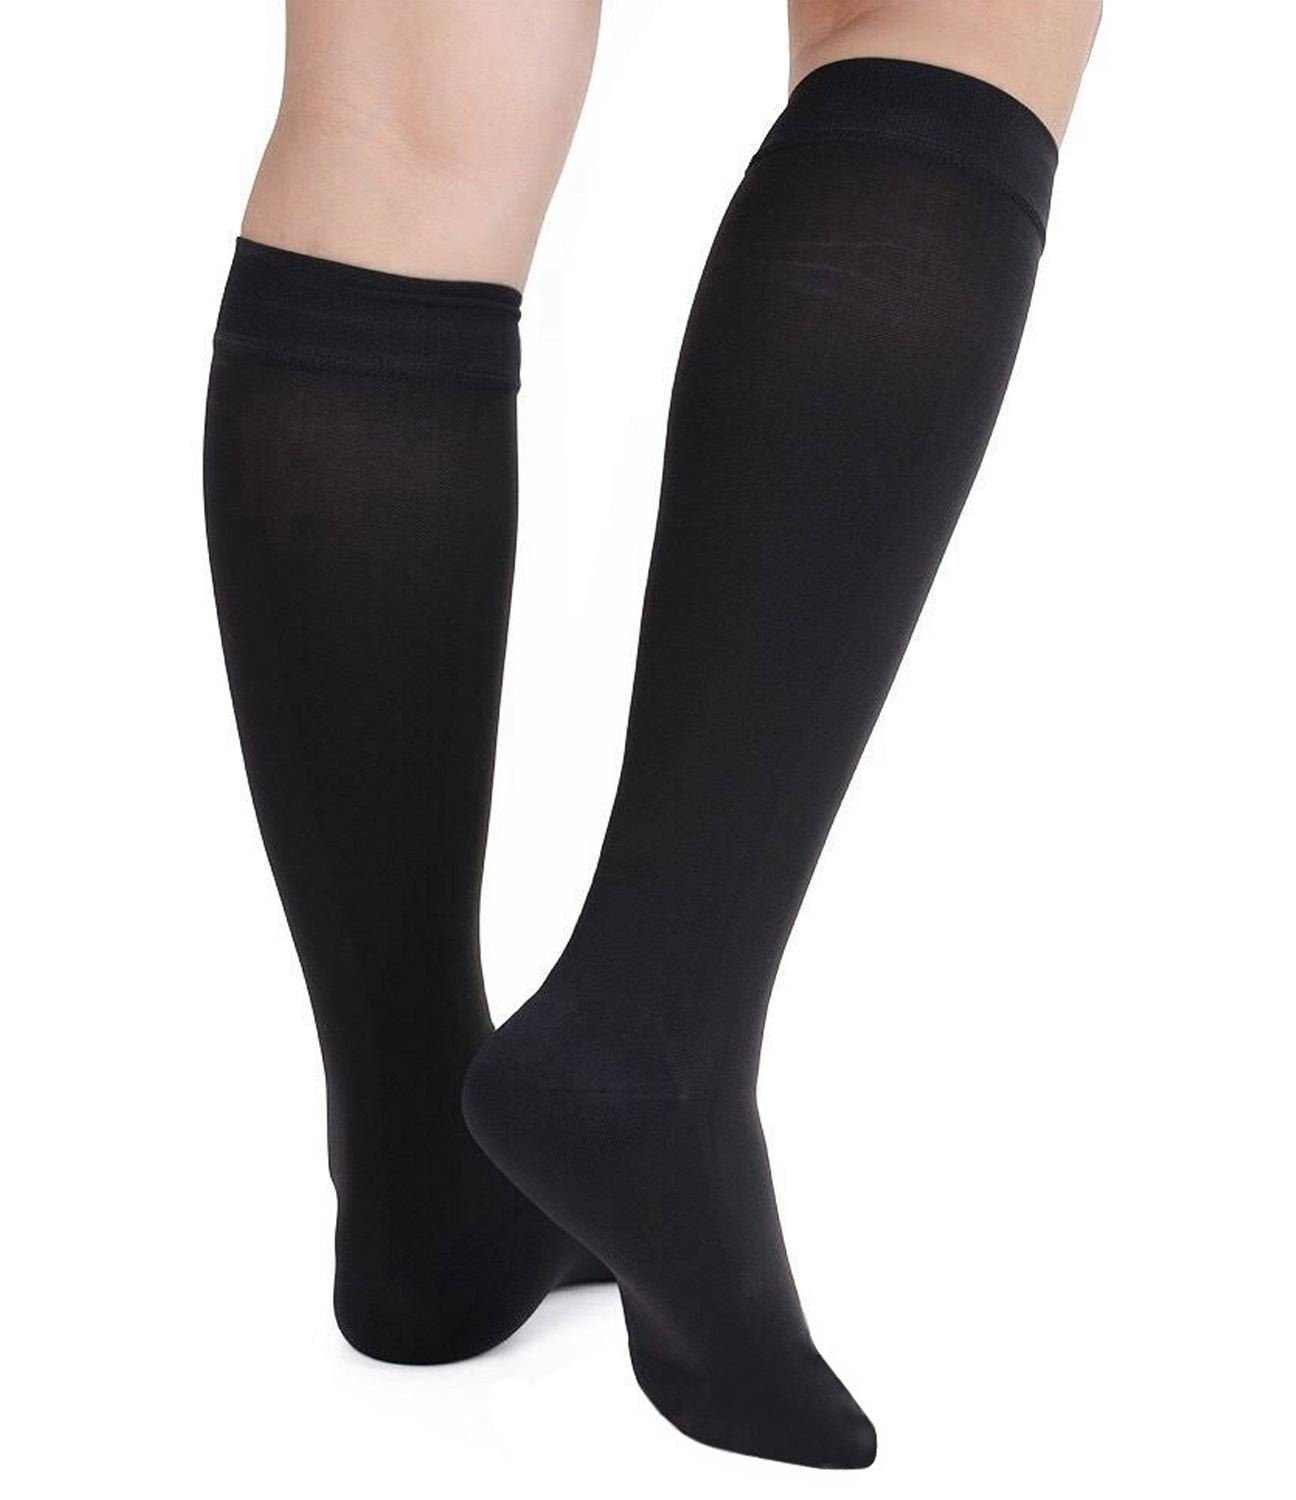 3c5fead0942a8e Get Quotations · Runee High Quality Close Toe Medical Compression Sock Knee  High Hosiery Stocking For Swelling, Varicose